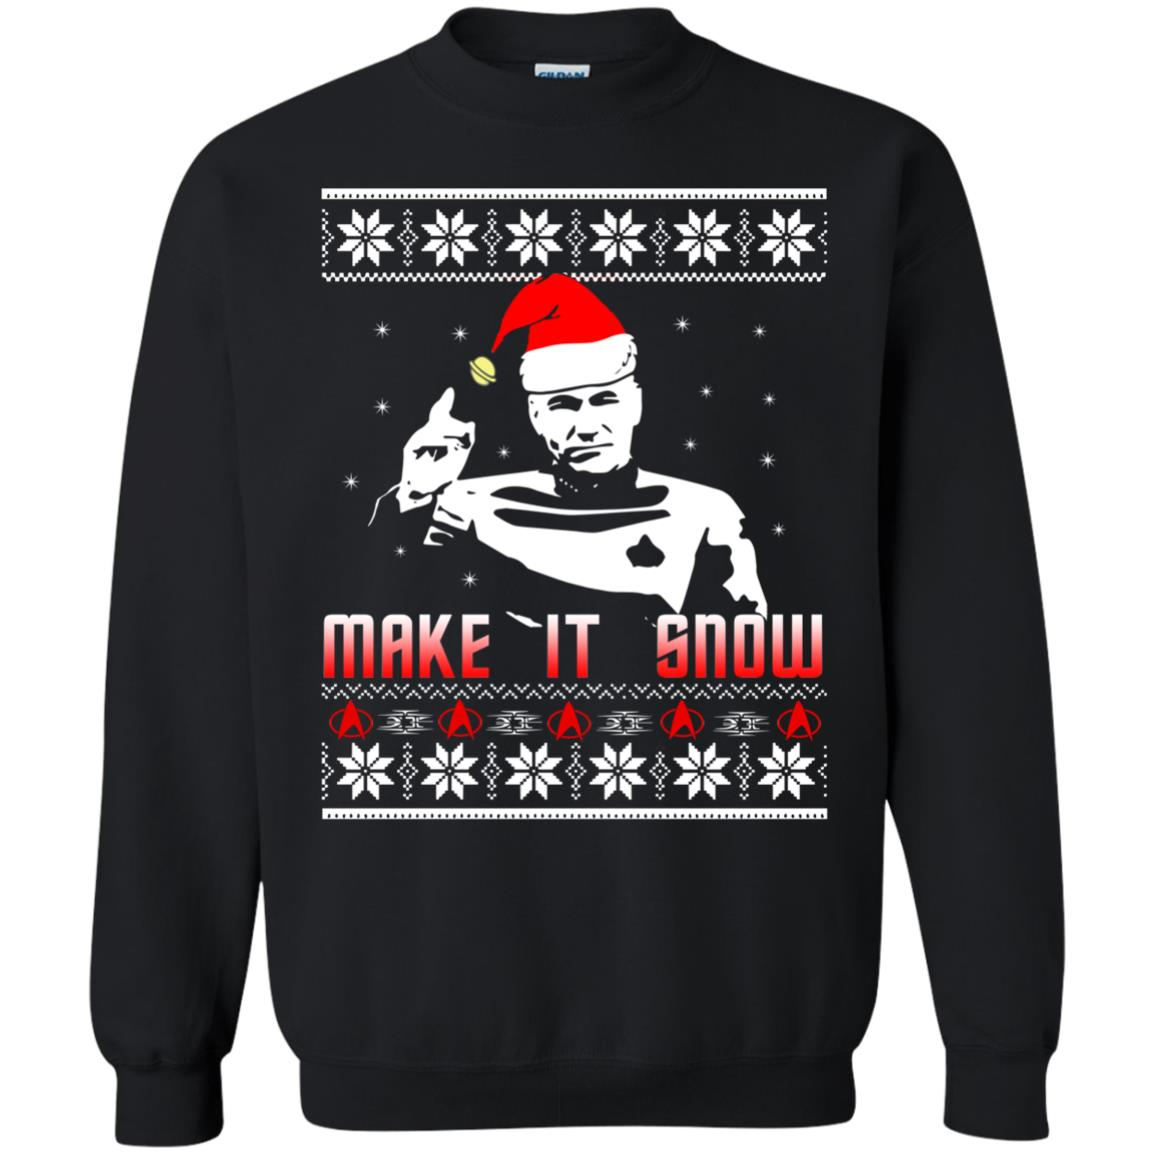 Make It Snow (Inspired by Star Trek) T-Shirt - from TShirtGrill UK